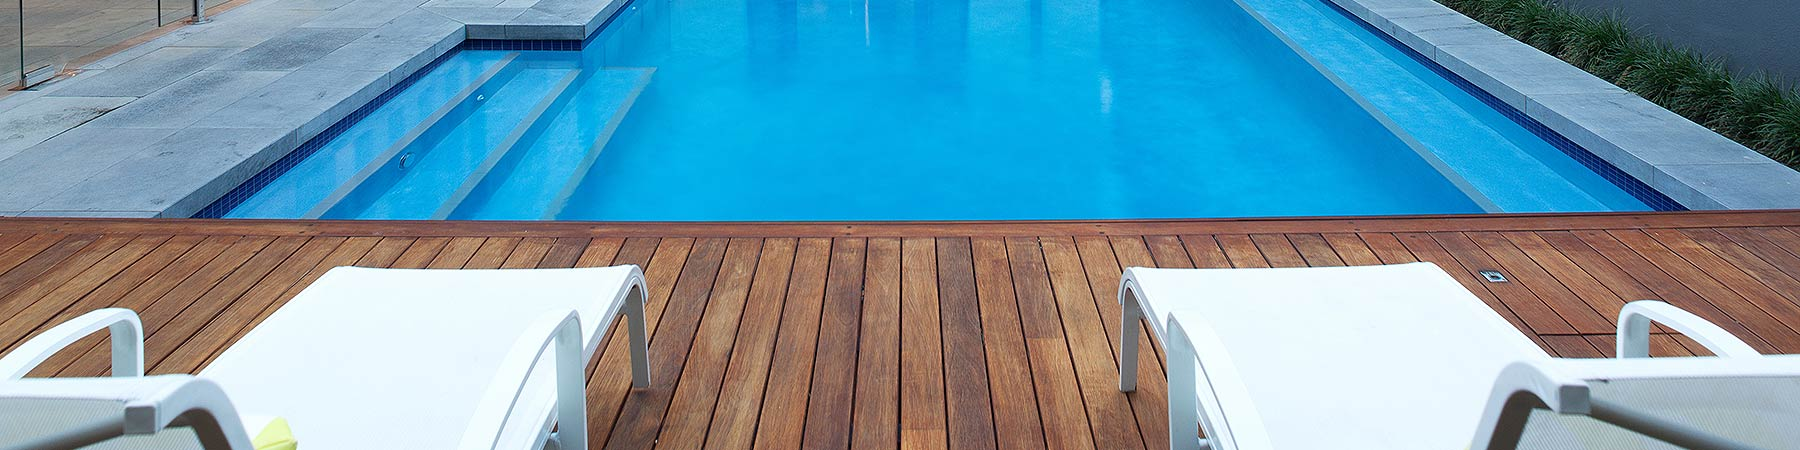 swimming pool heating design photo - 3